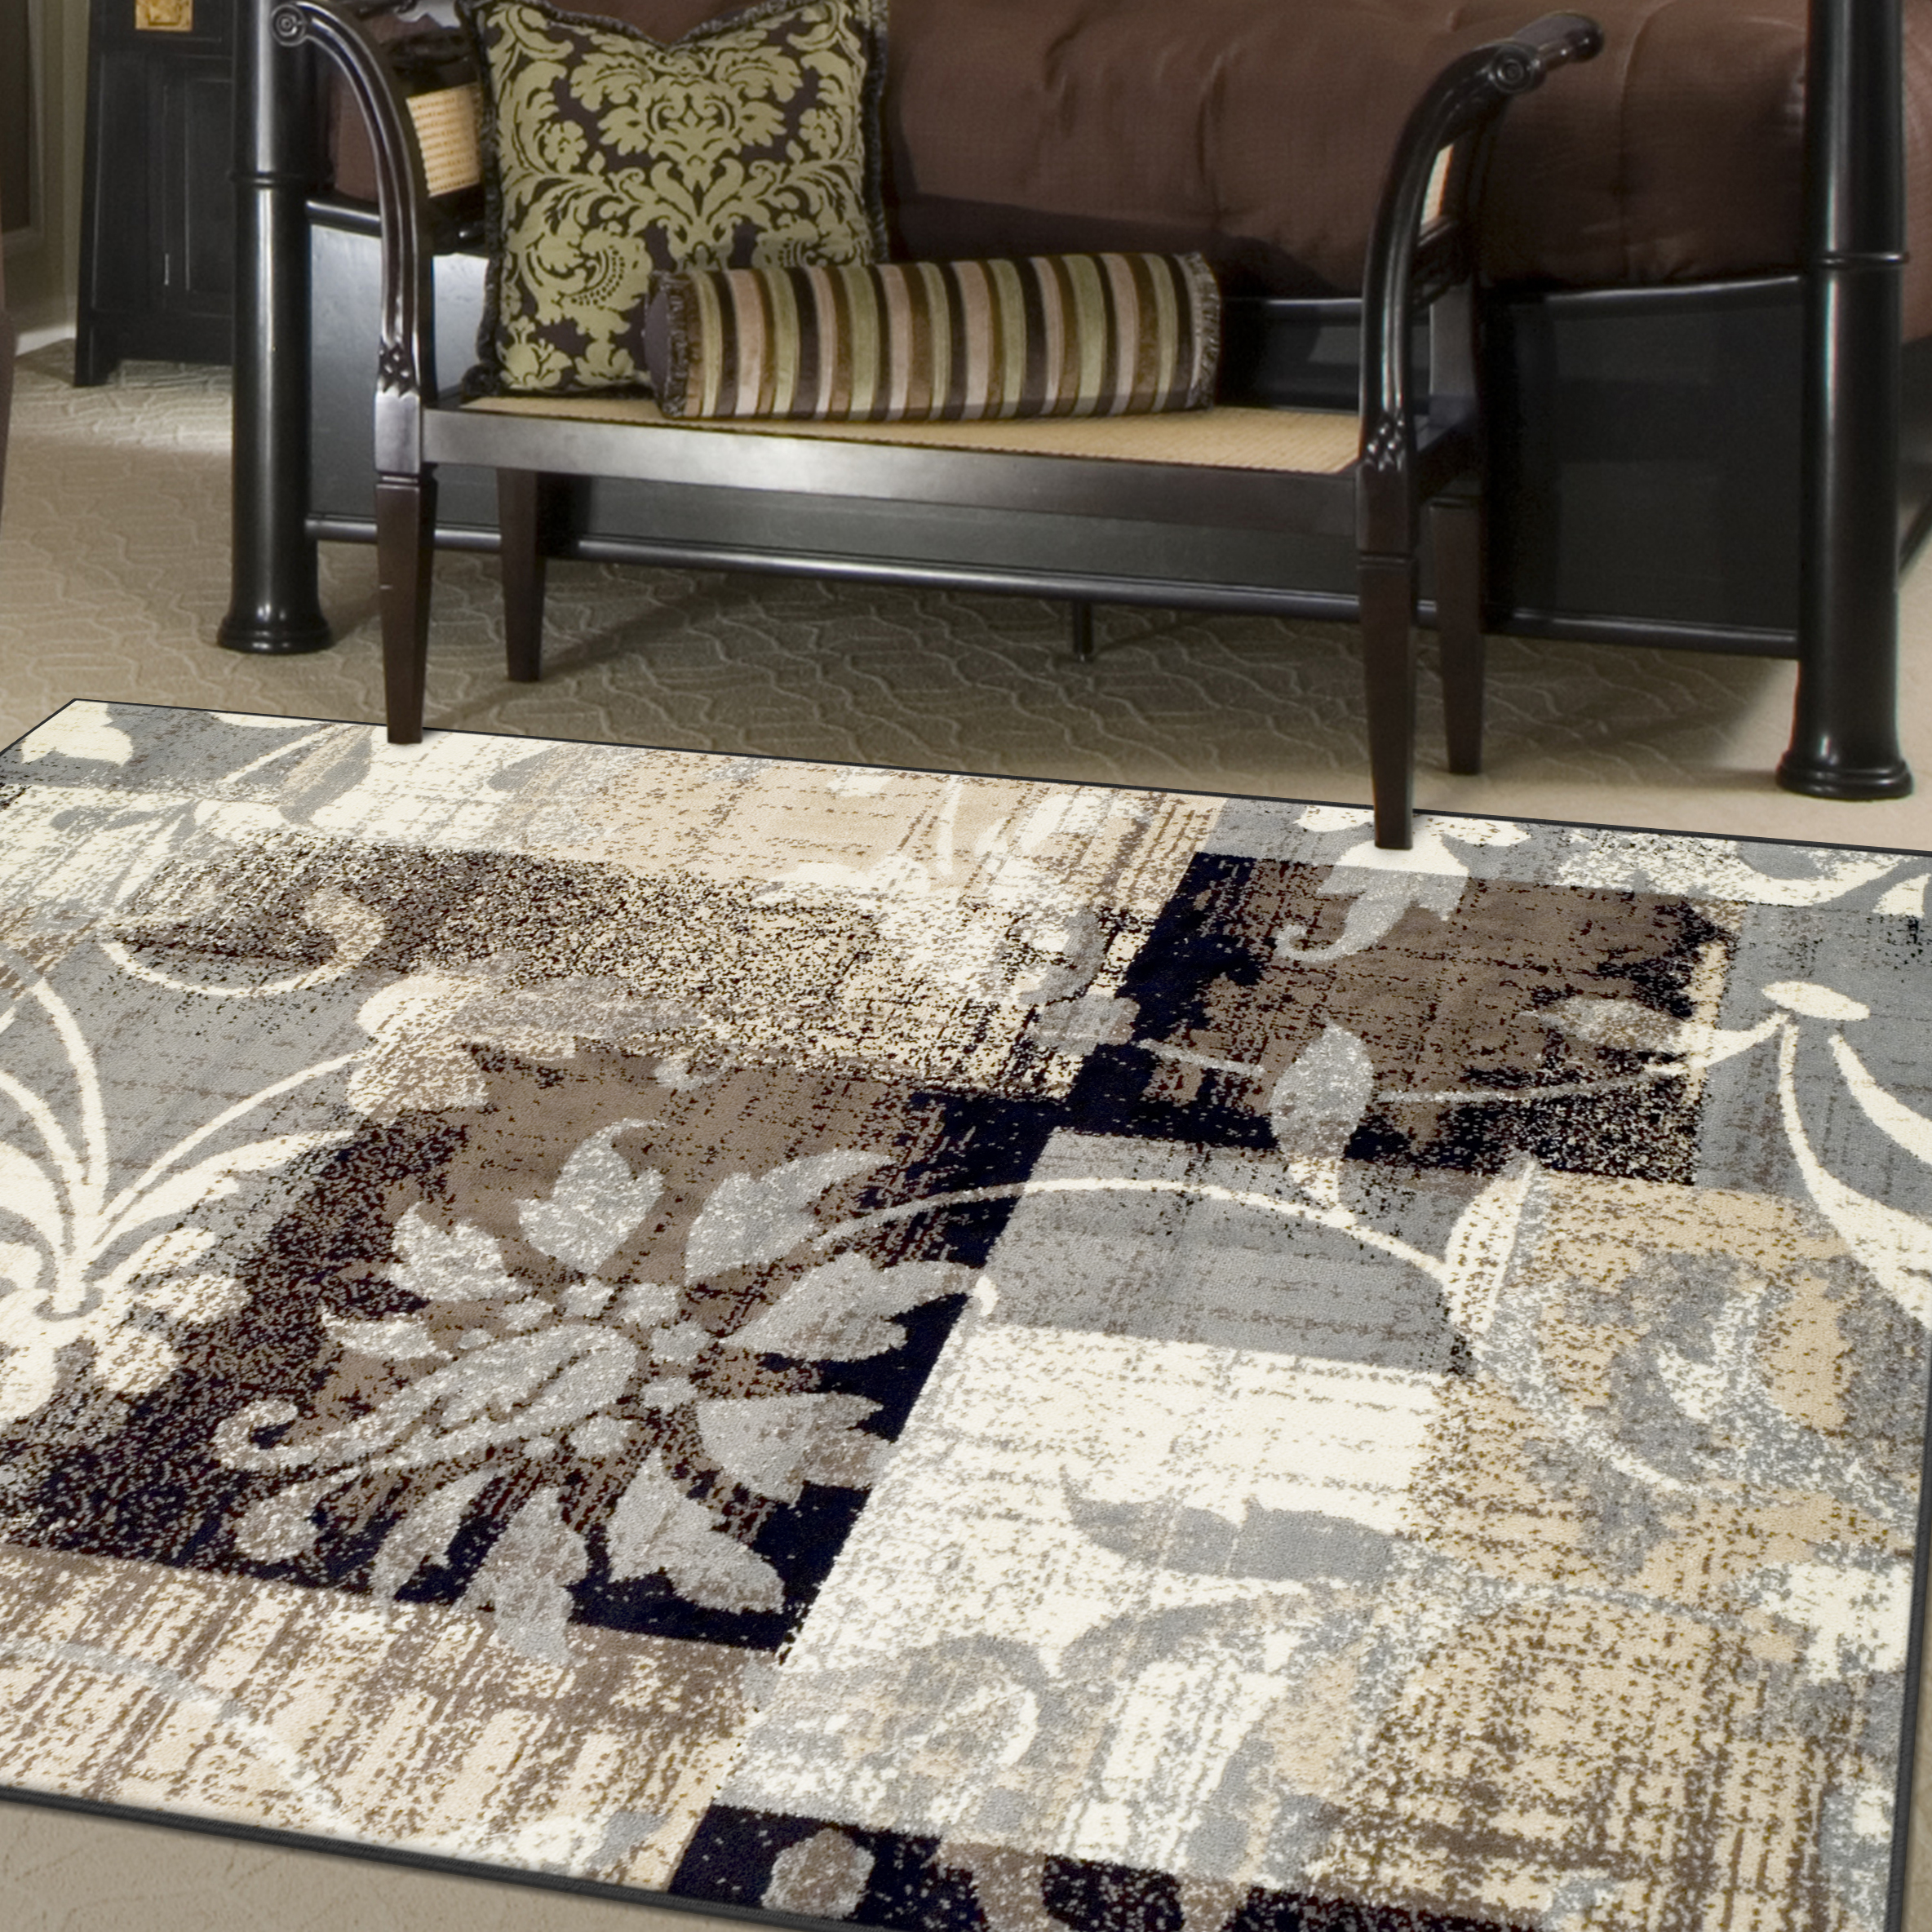 Superior Pastiche Collection with 8mm Pile and Jute Backing, Moisture Resistant and Anti-Static Indoor Area Rug